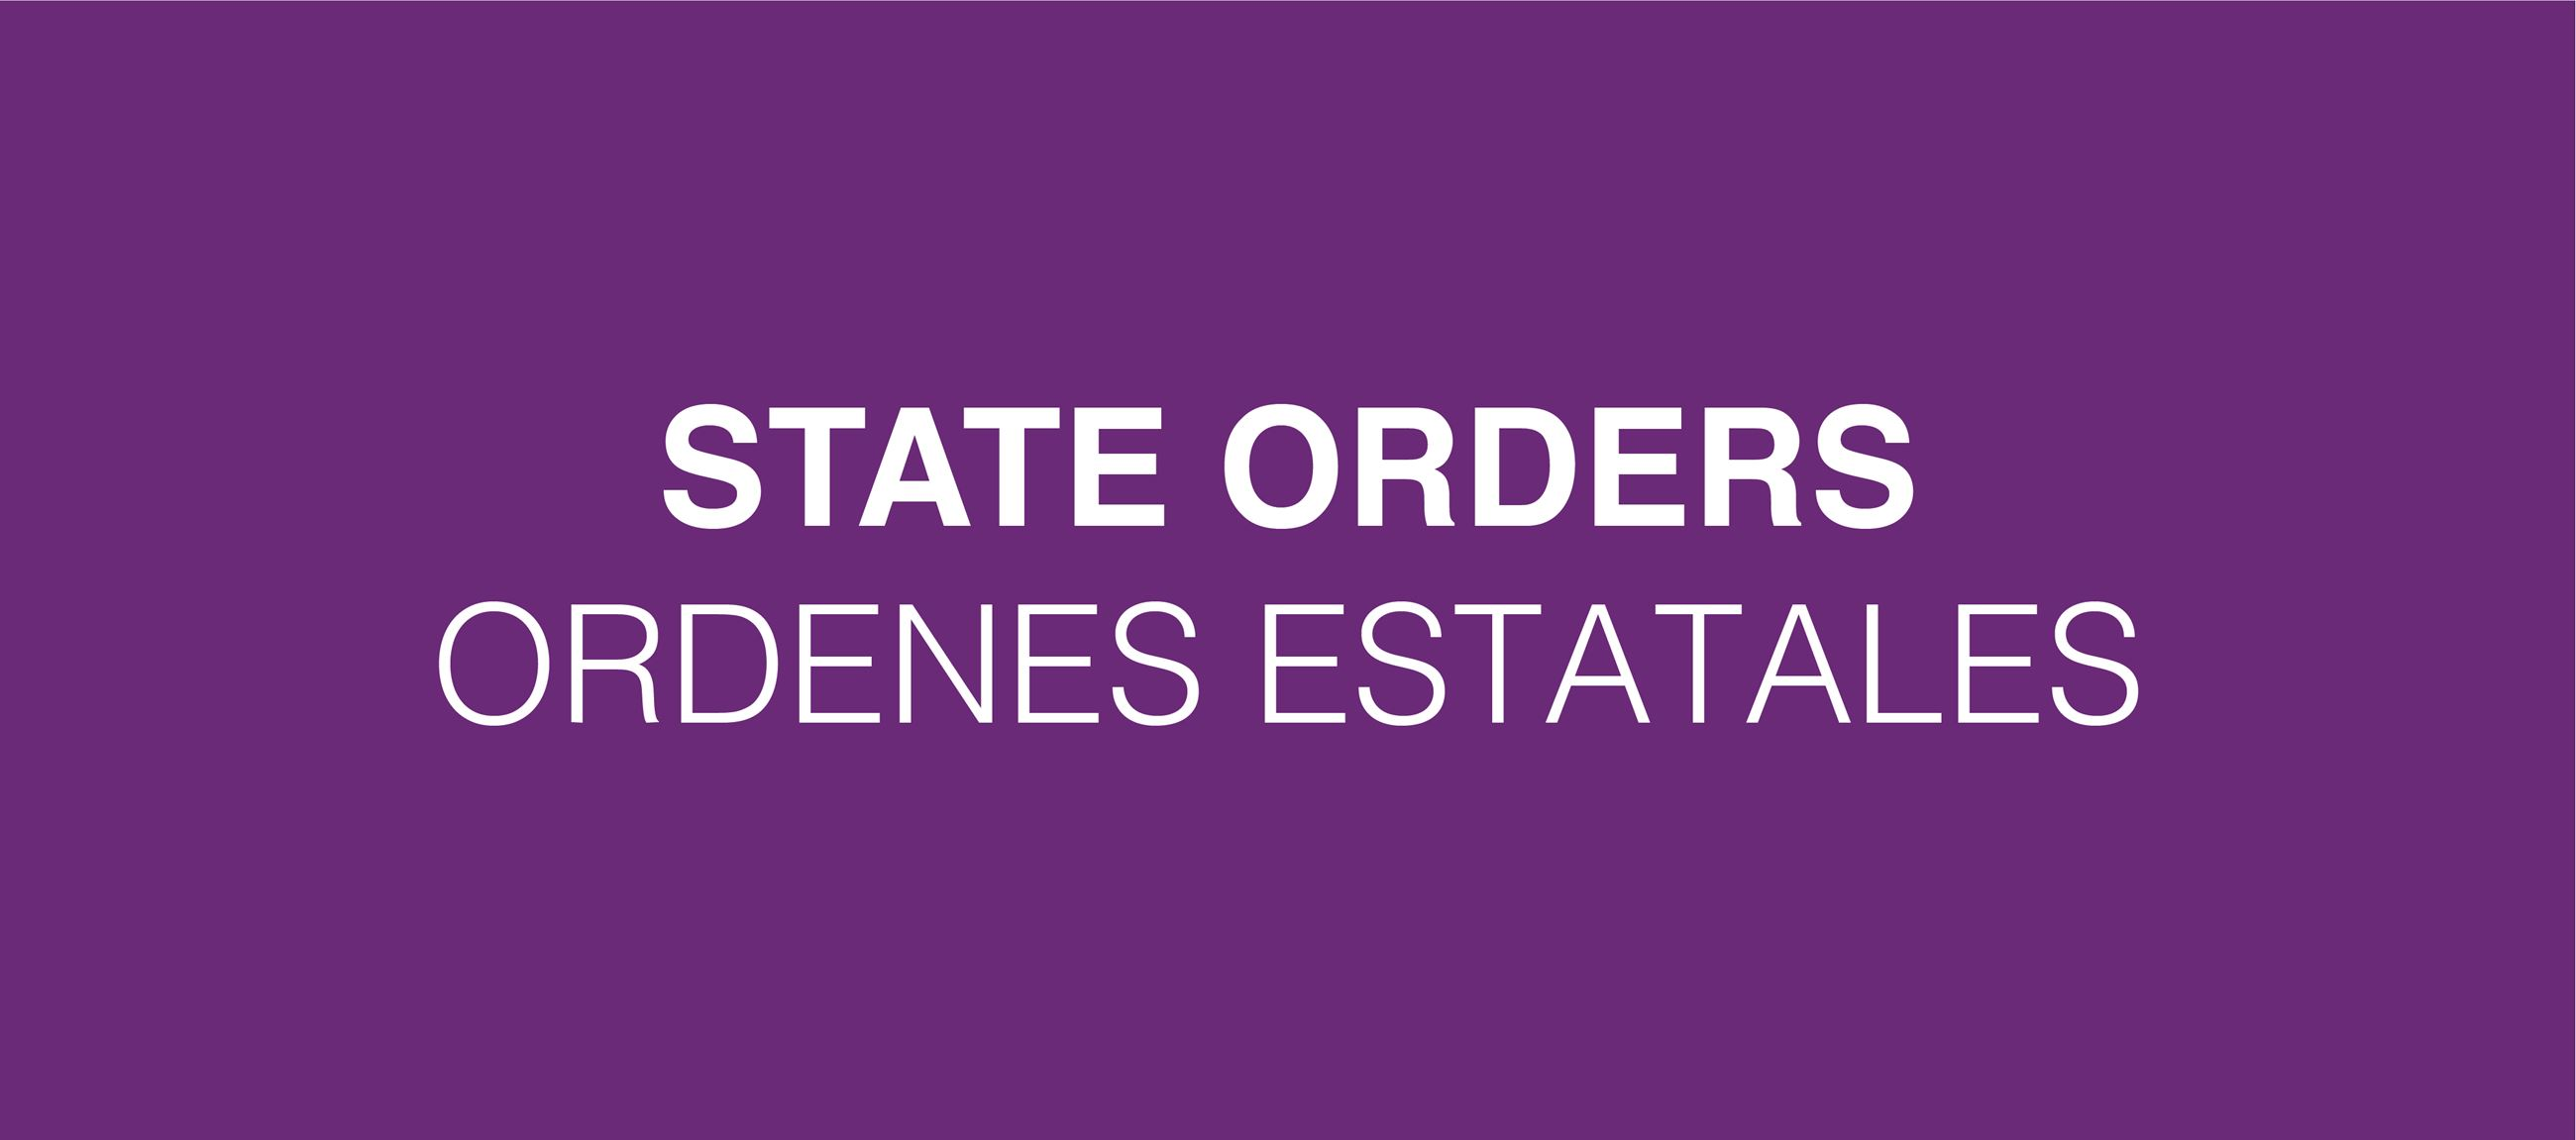 State Order-01